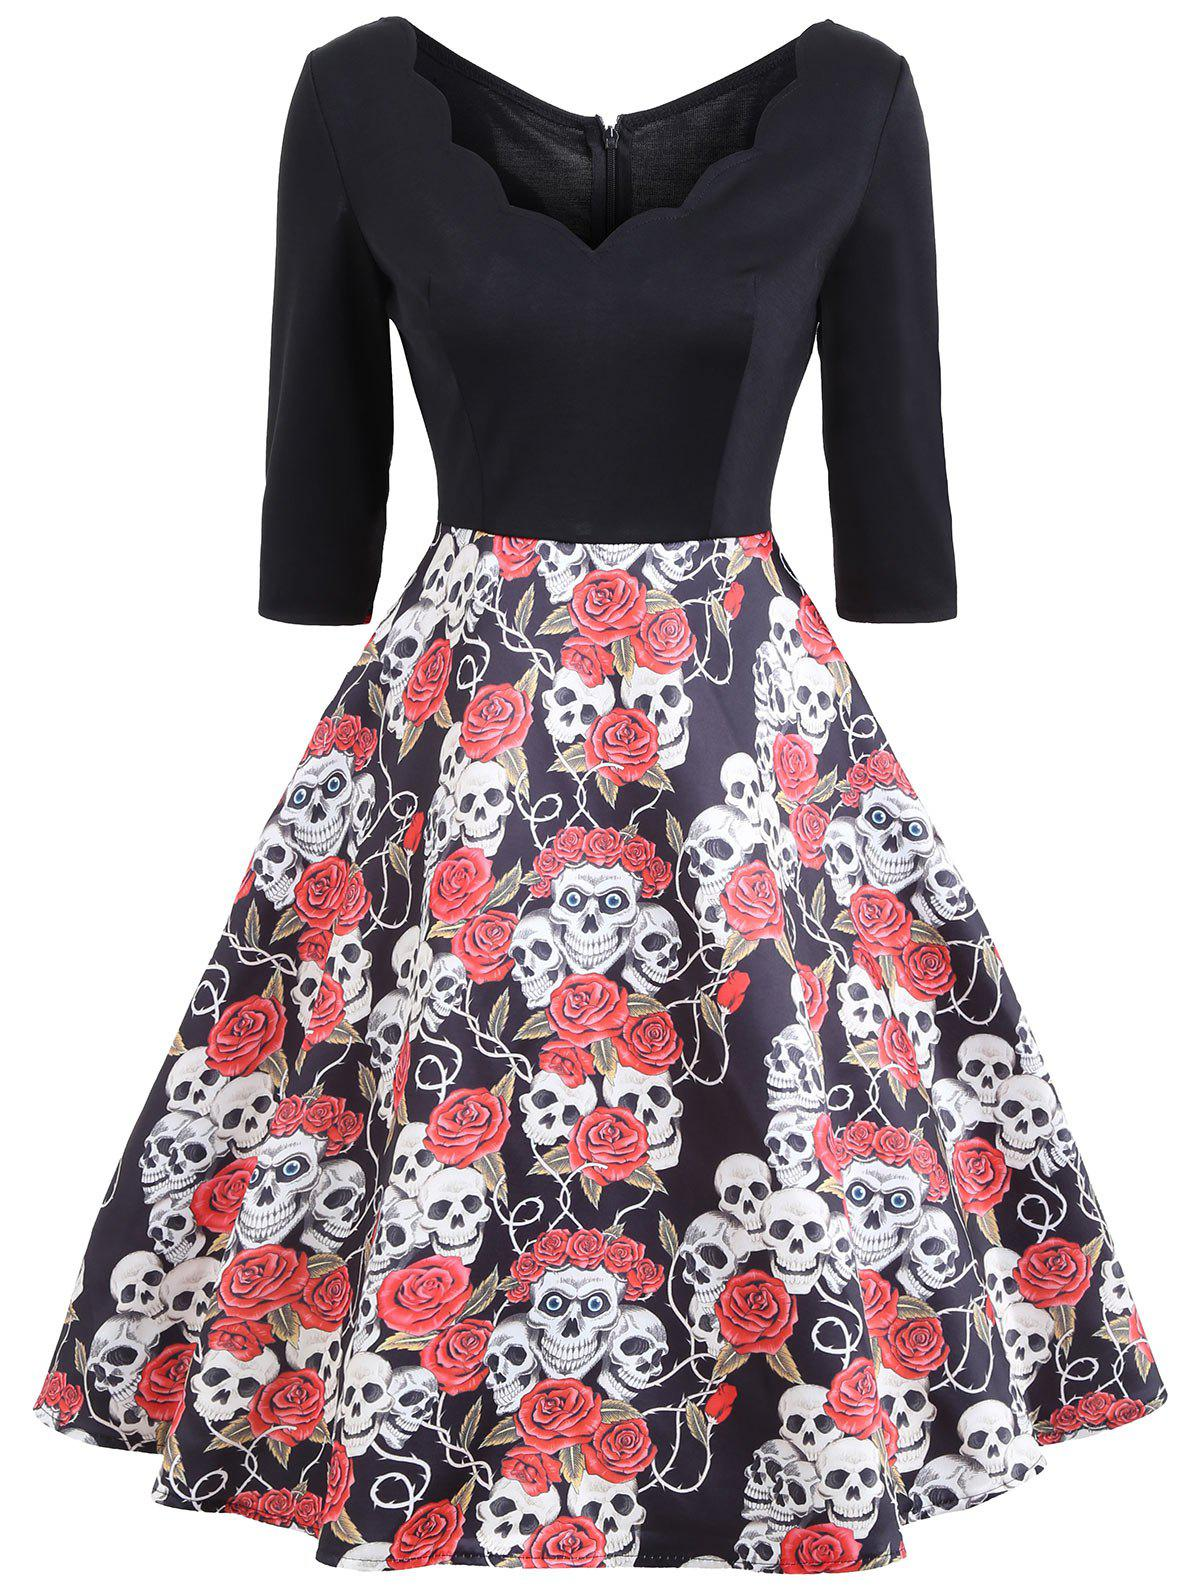 Halloween Floral Skull Print Vintage Dress - COLORMIX M